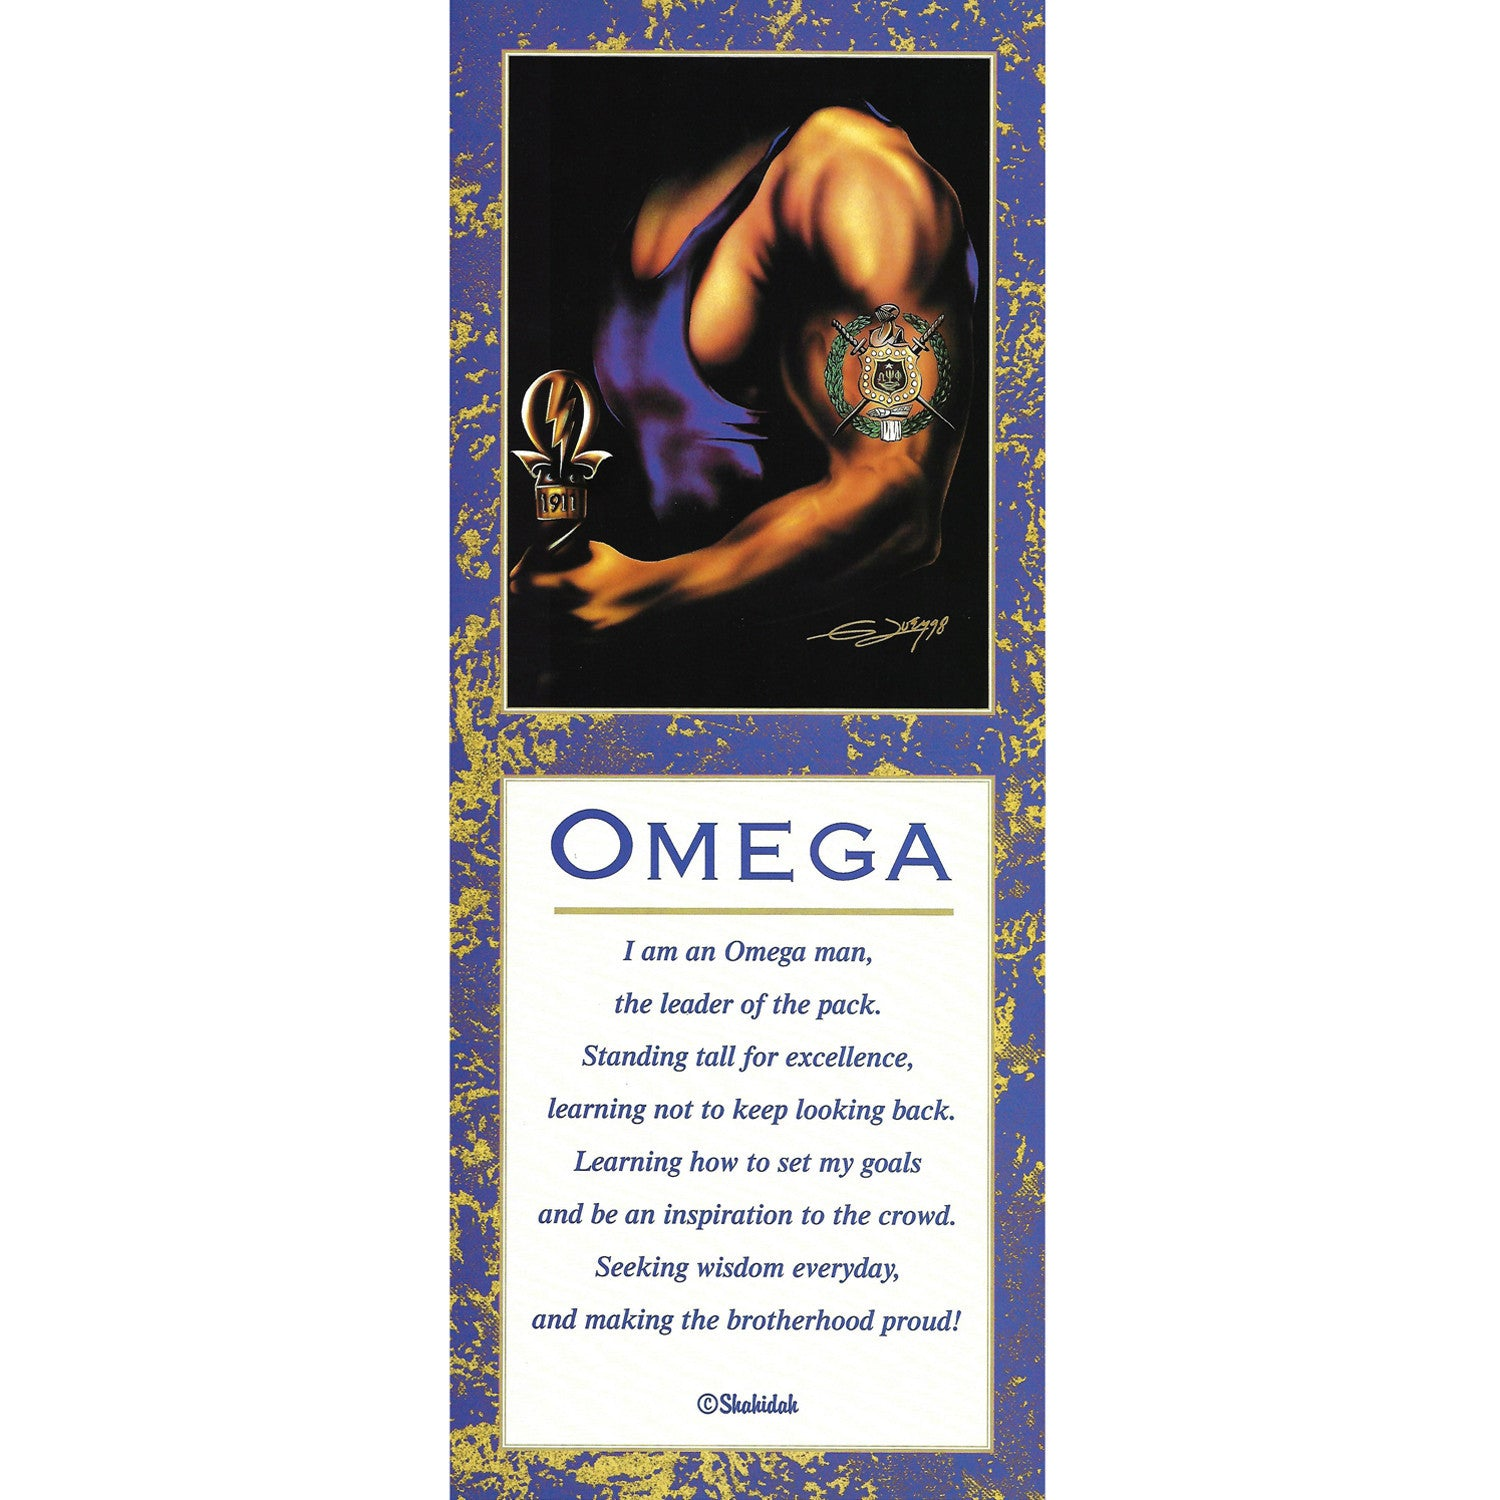 Omega Psi Phi by Gerald Ivey and Shahidah (Literary Art Print)